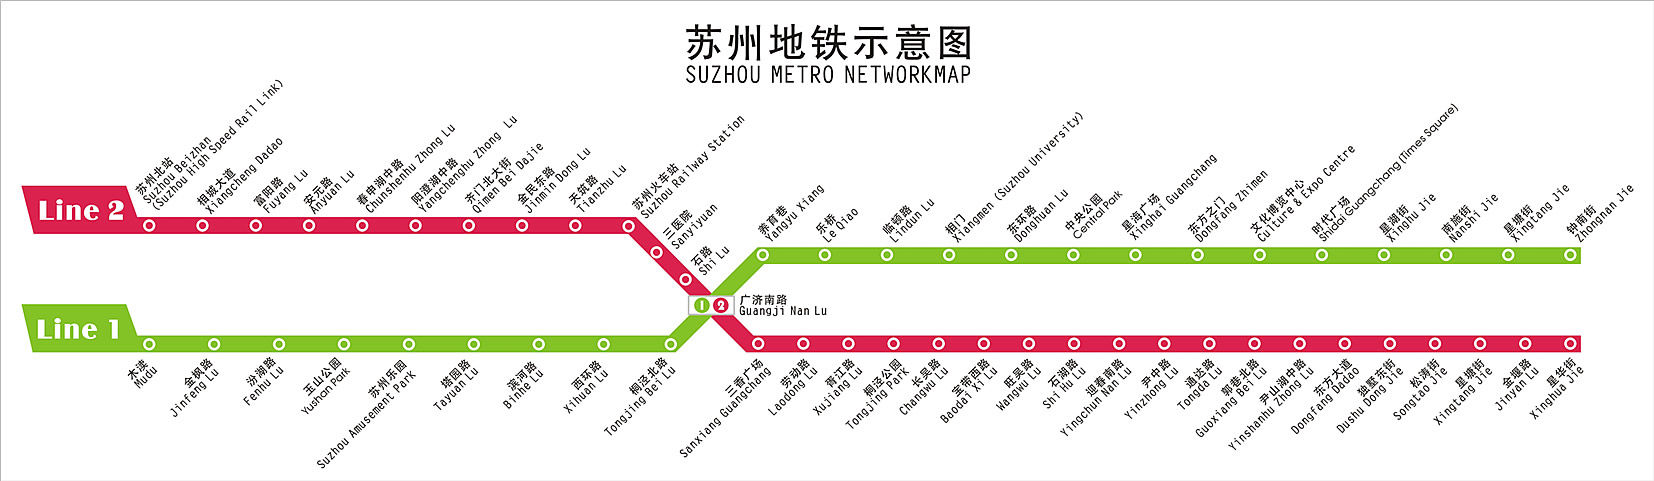 Metro Map of Suzhou